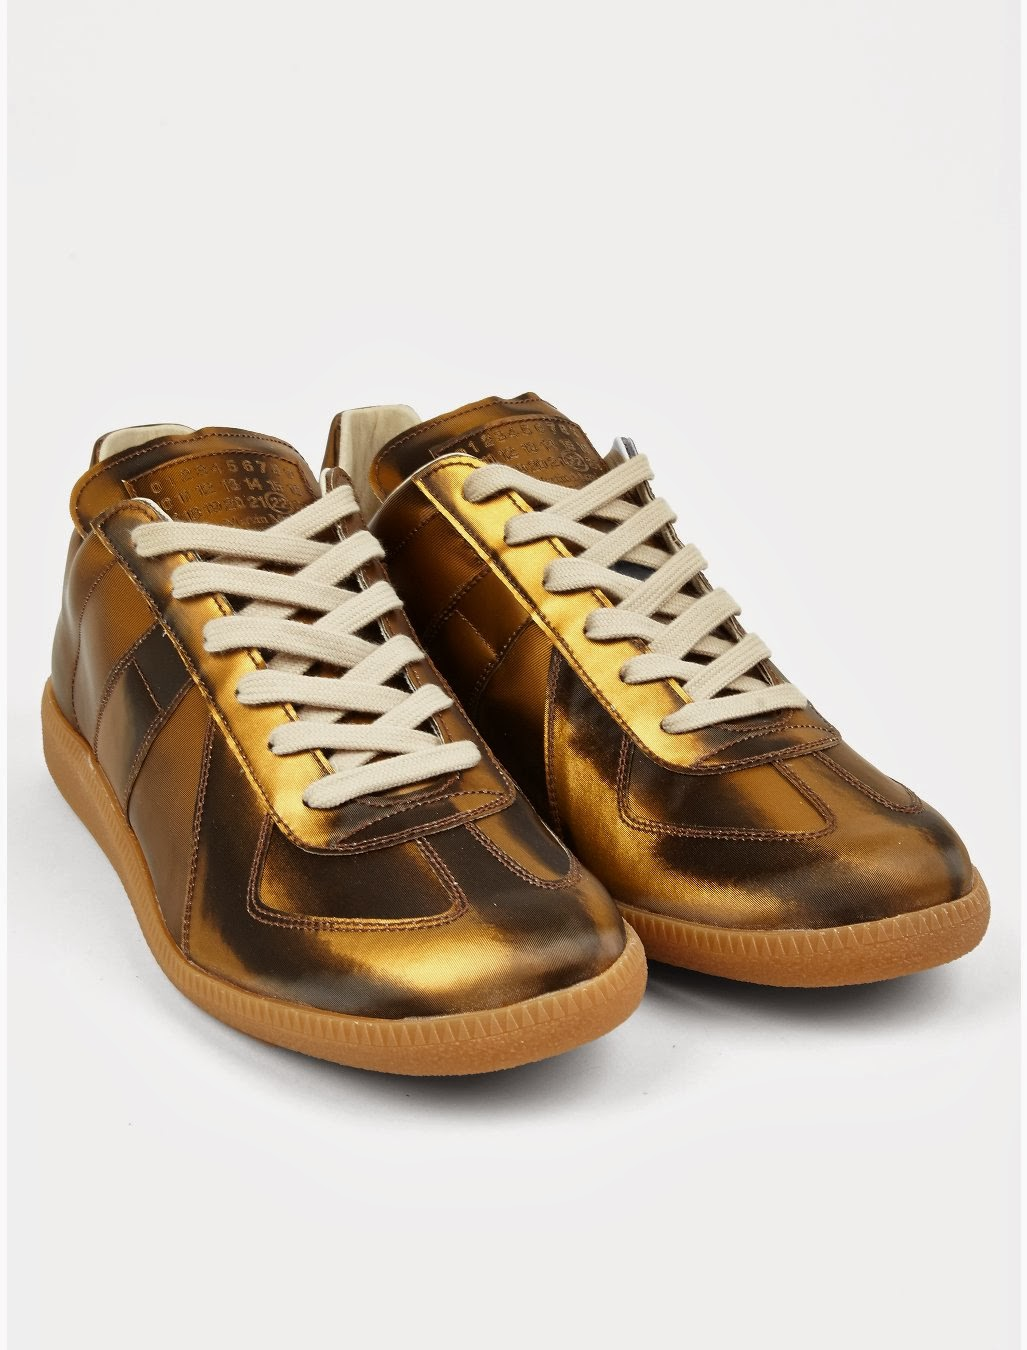 Going For The Gold: Maison Martin Margiela 22 Gold Replica Sneaker | SHOEOGRAPHY